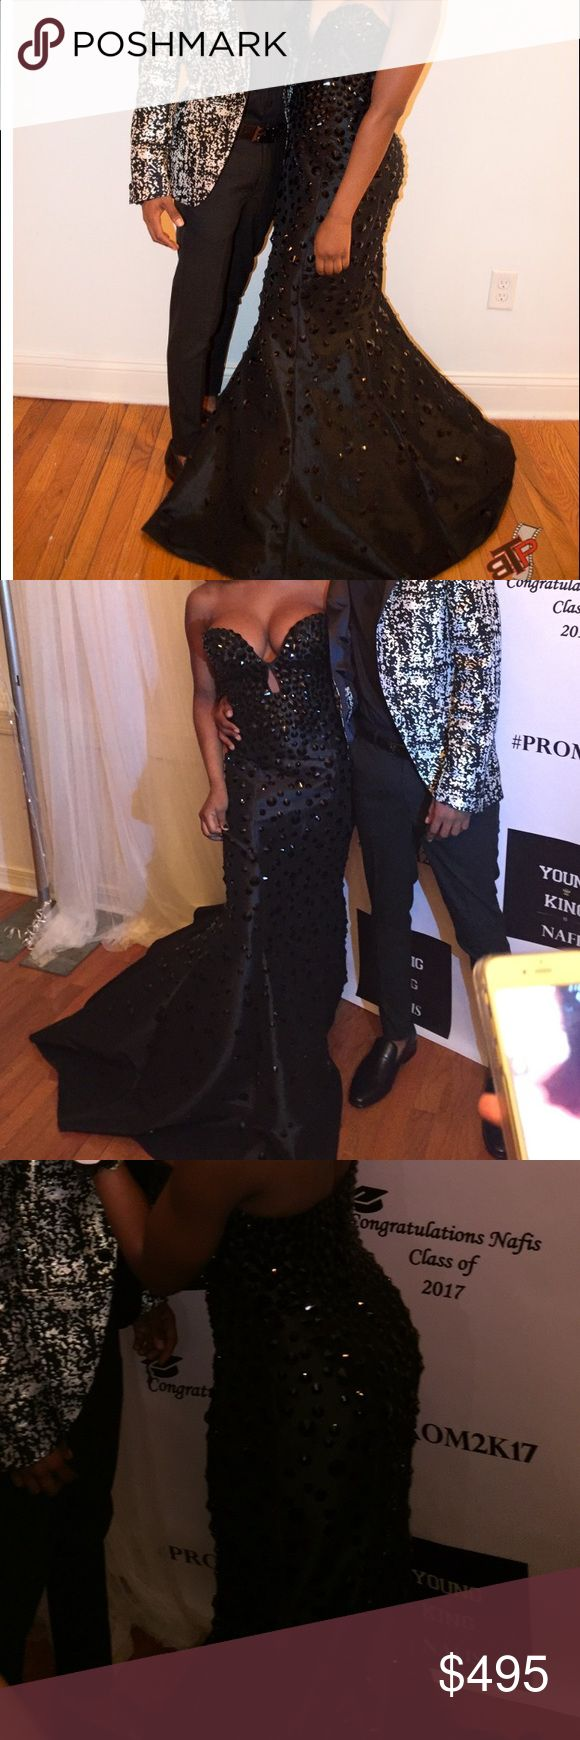 Jovani 944 Black Mermaid Beaded Gown This beautiful mermaid gown was worn on prom and was definitely a show stopper! The black on black is an amazing combination as shown in the pictures, when the light hits your are absolutely red carpet ready! The black is so timeless and can be worn for years to come! Jovani Dresses Prom